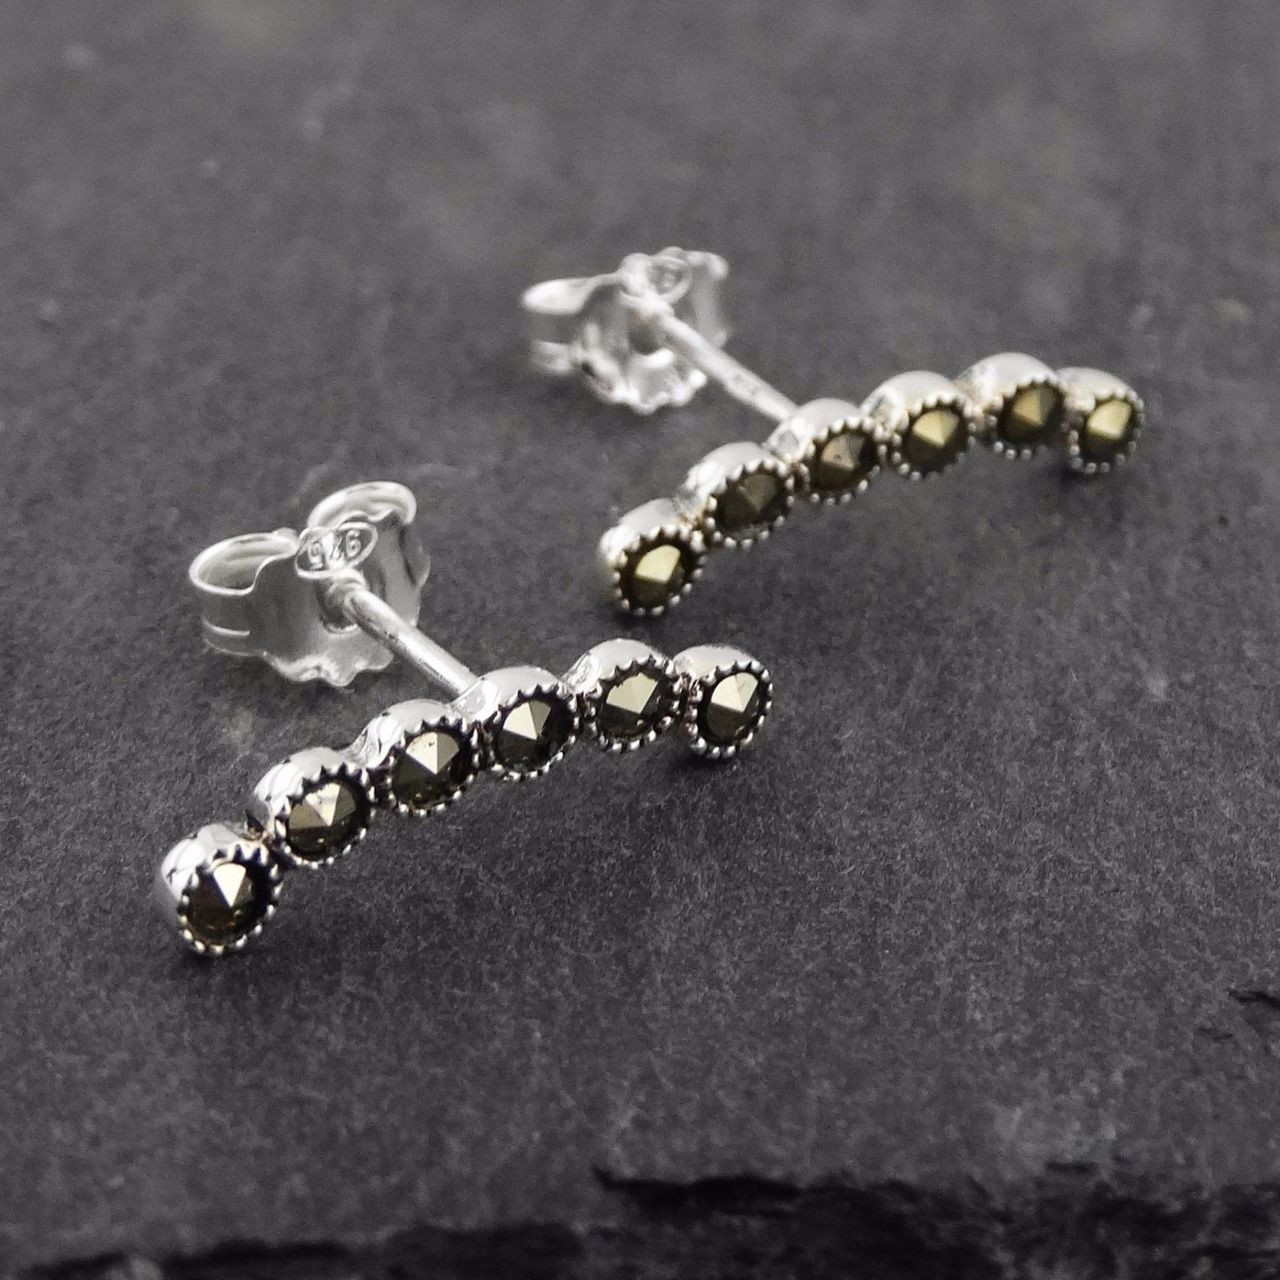 Sterling Marcasite Curved Ear Climber Earrings Silver Marcasite Curved Ear Climber Earrings Silver Ear Climber Earrings Philippines Ear Climber Earrings Shop wedding rings Ear Climber Earrings